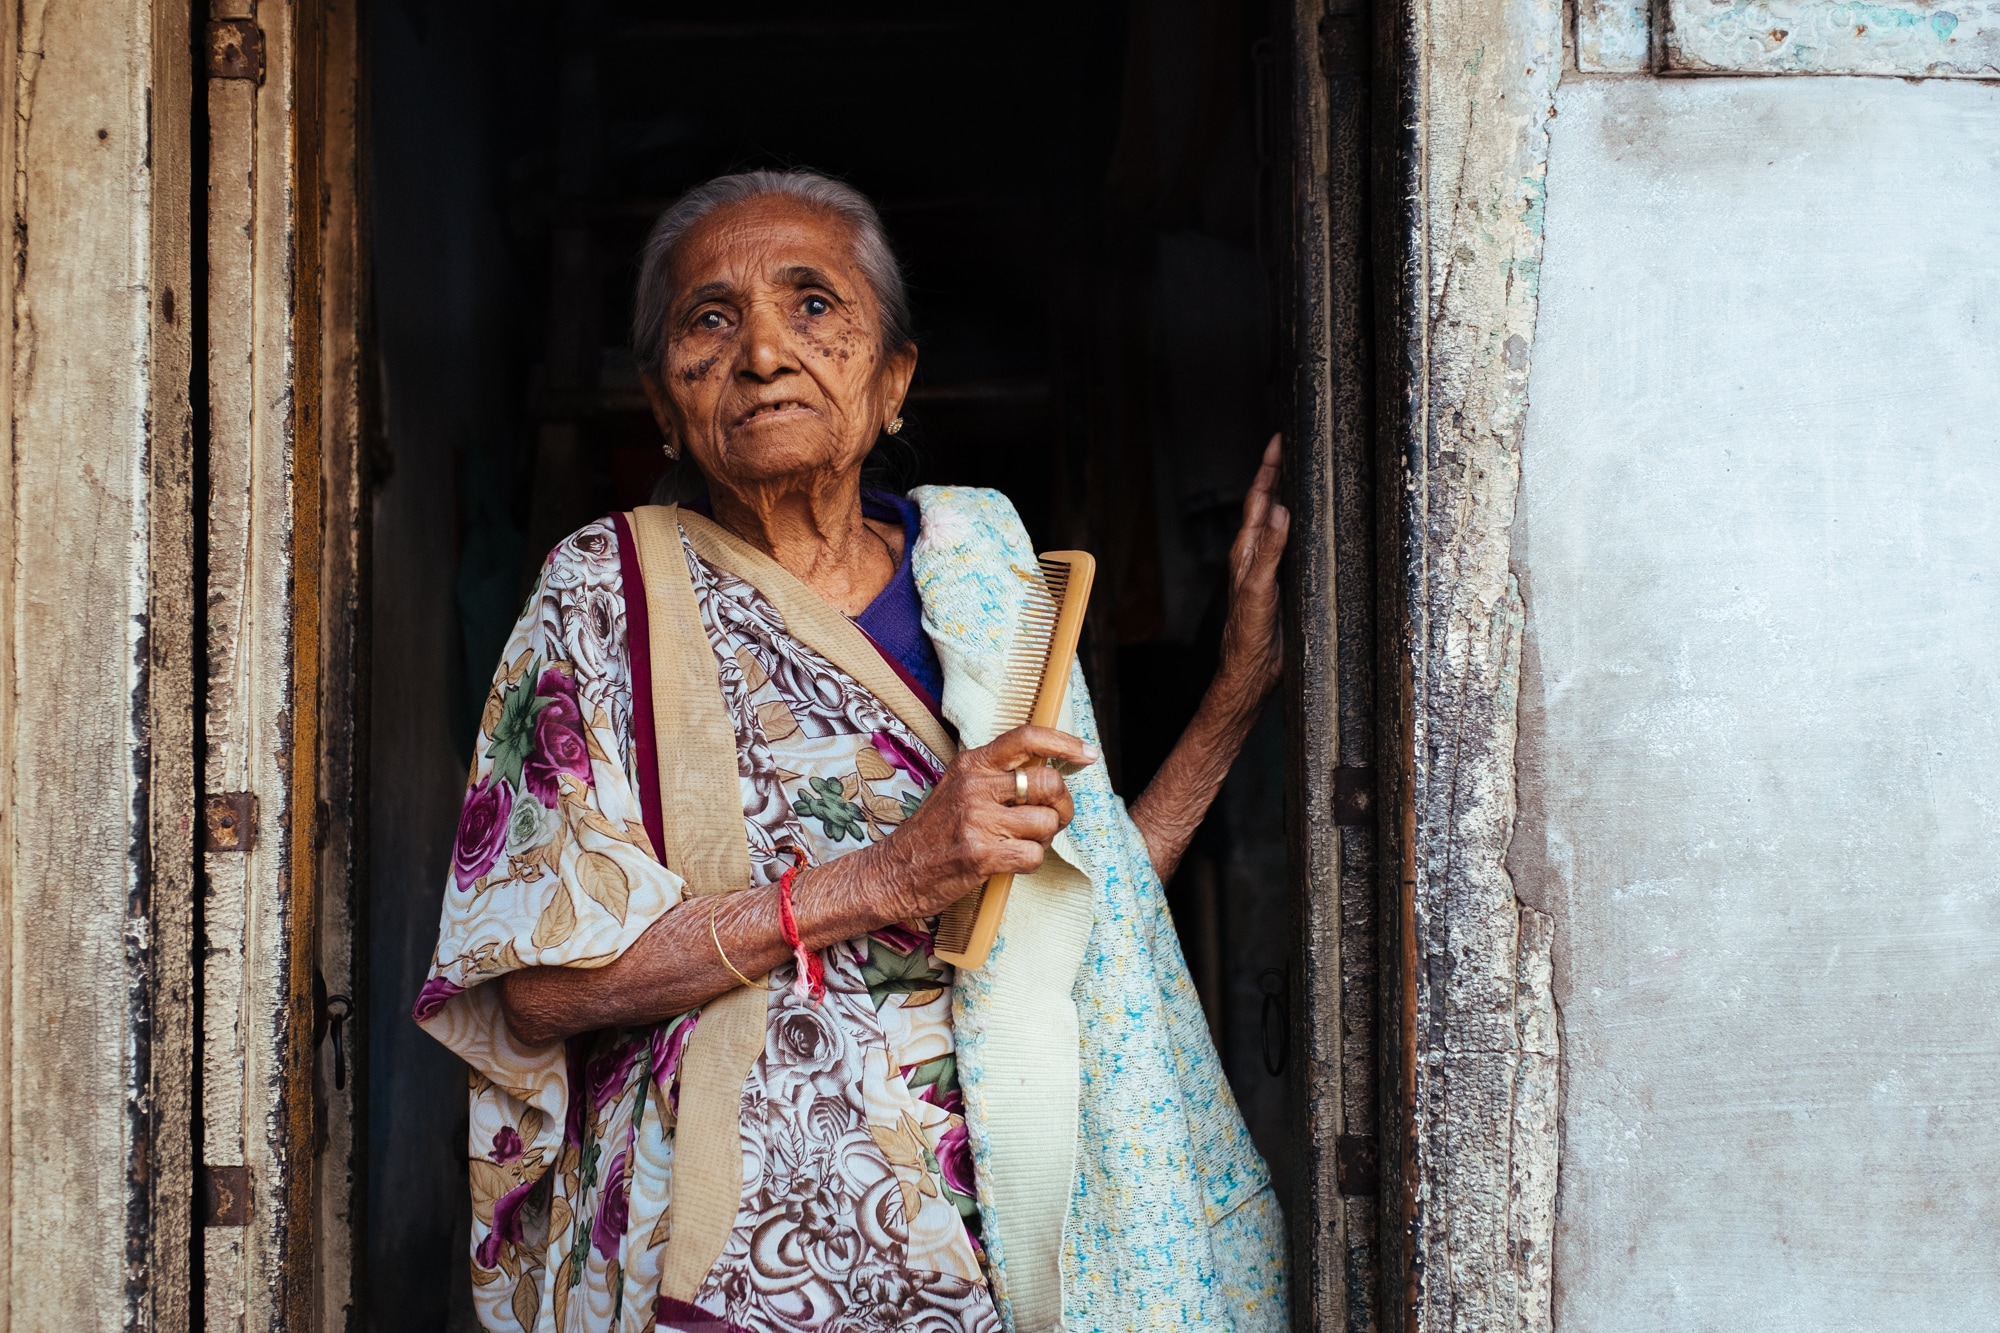 A 93-year-old woman in Ahmedabad